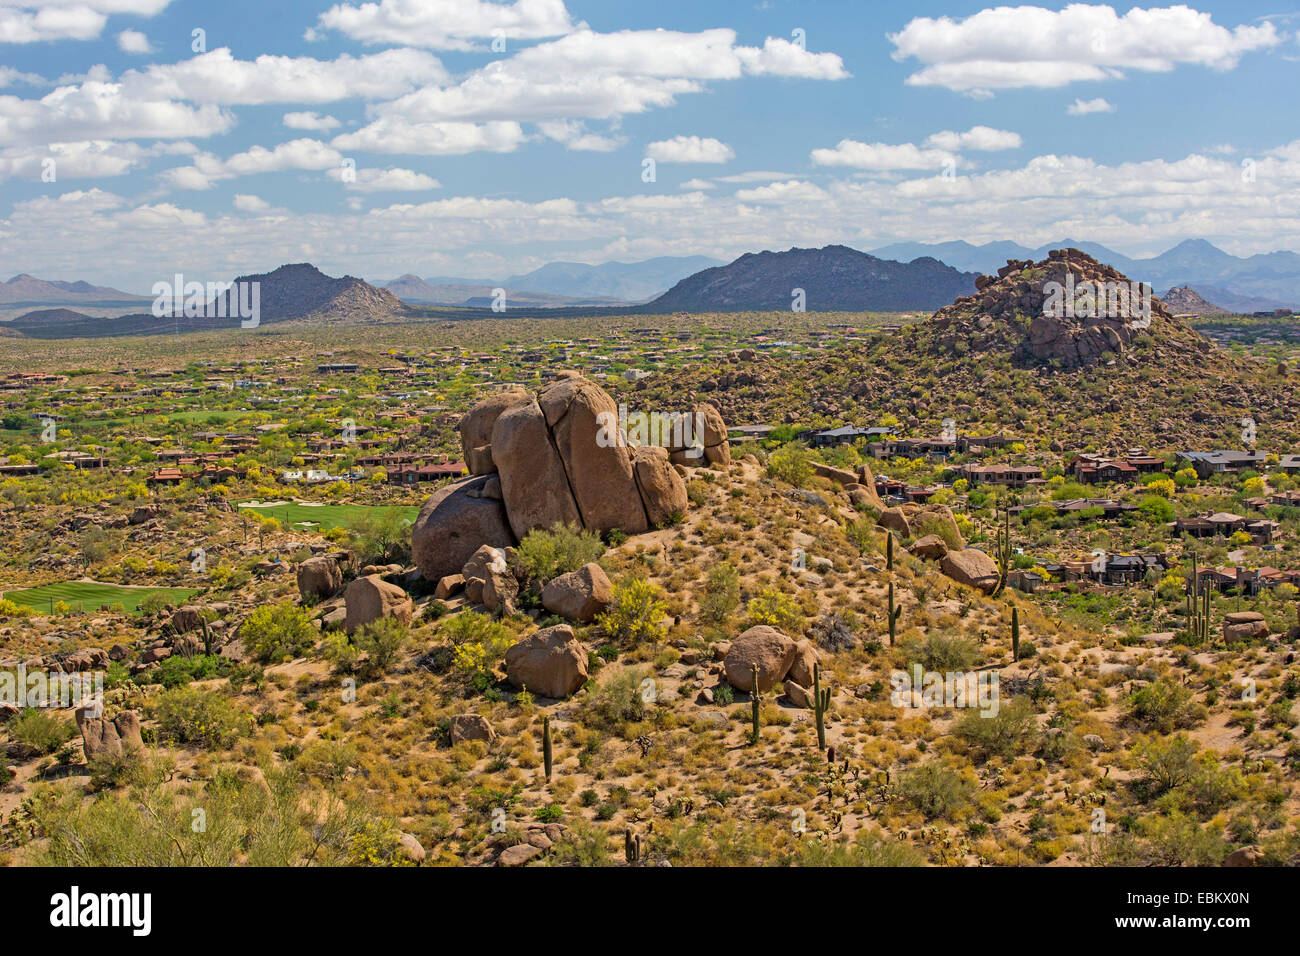 Phoenix Mesa High Resolution Stock Photography And Images Alamy